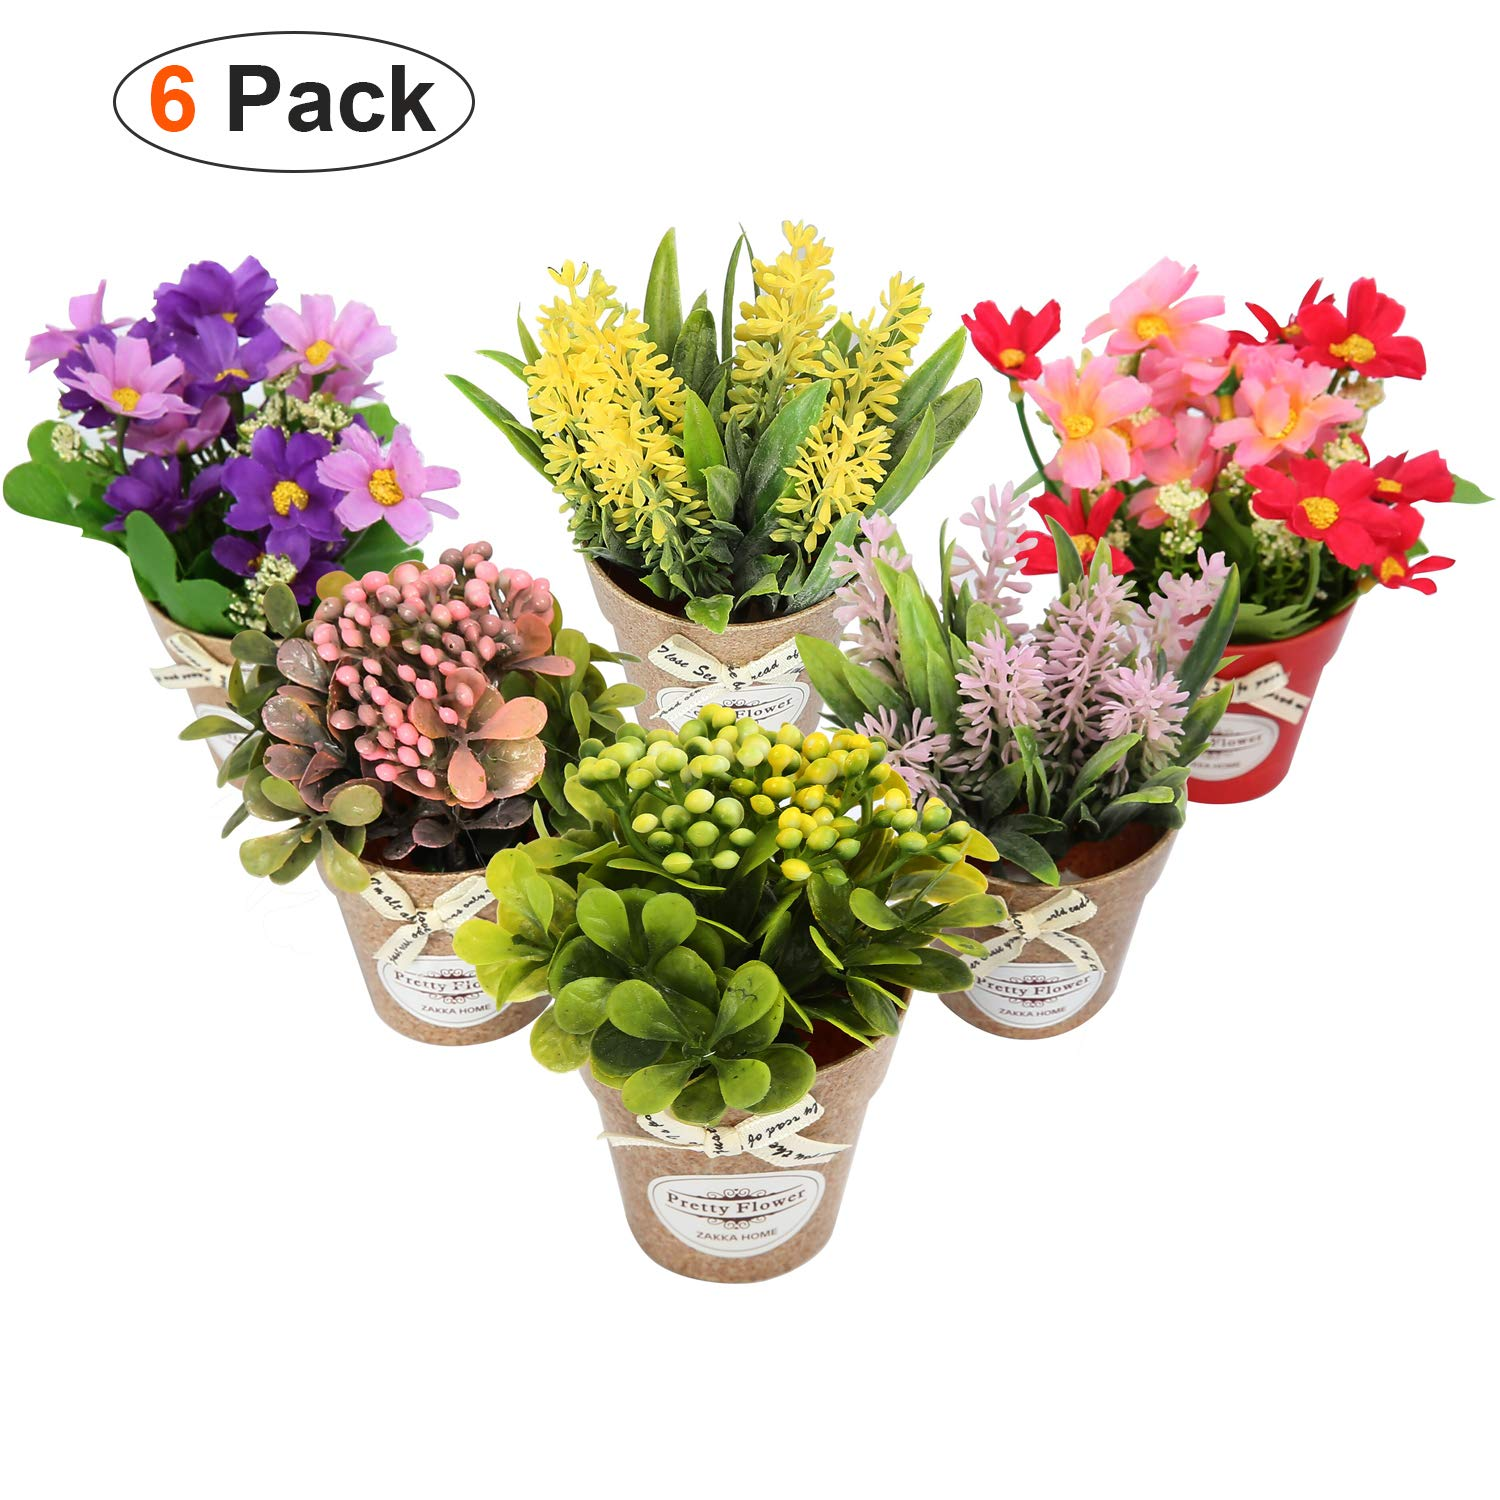 LUEUR Set of 6 Potted Artificial Flowers Fake Lavender Flowers in Pots Faux Flowers in Pot for Home Office Decoration Desktop Decor